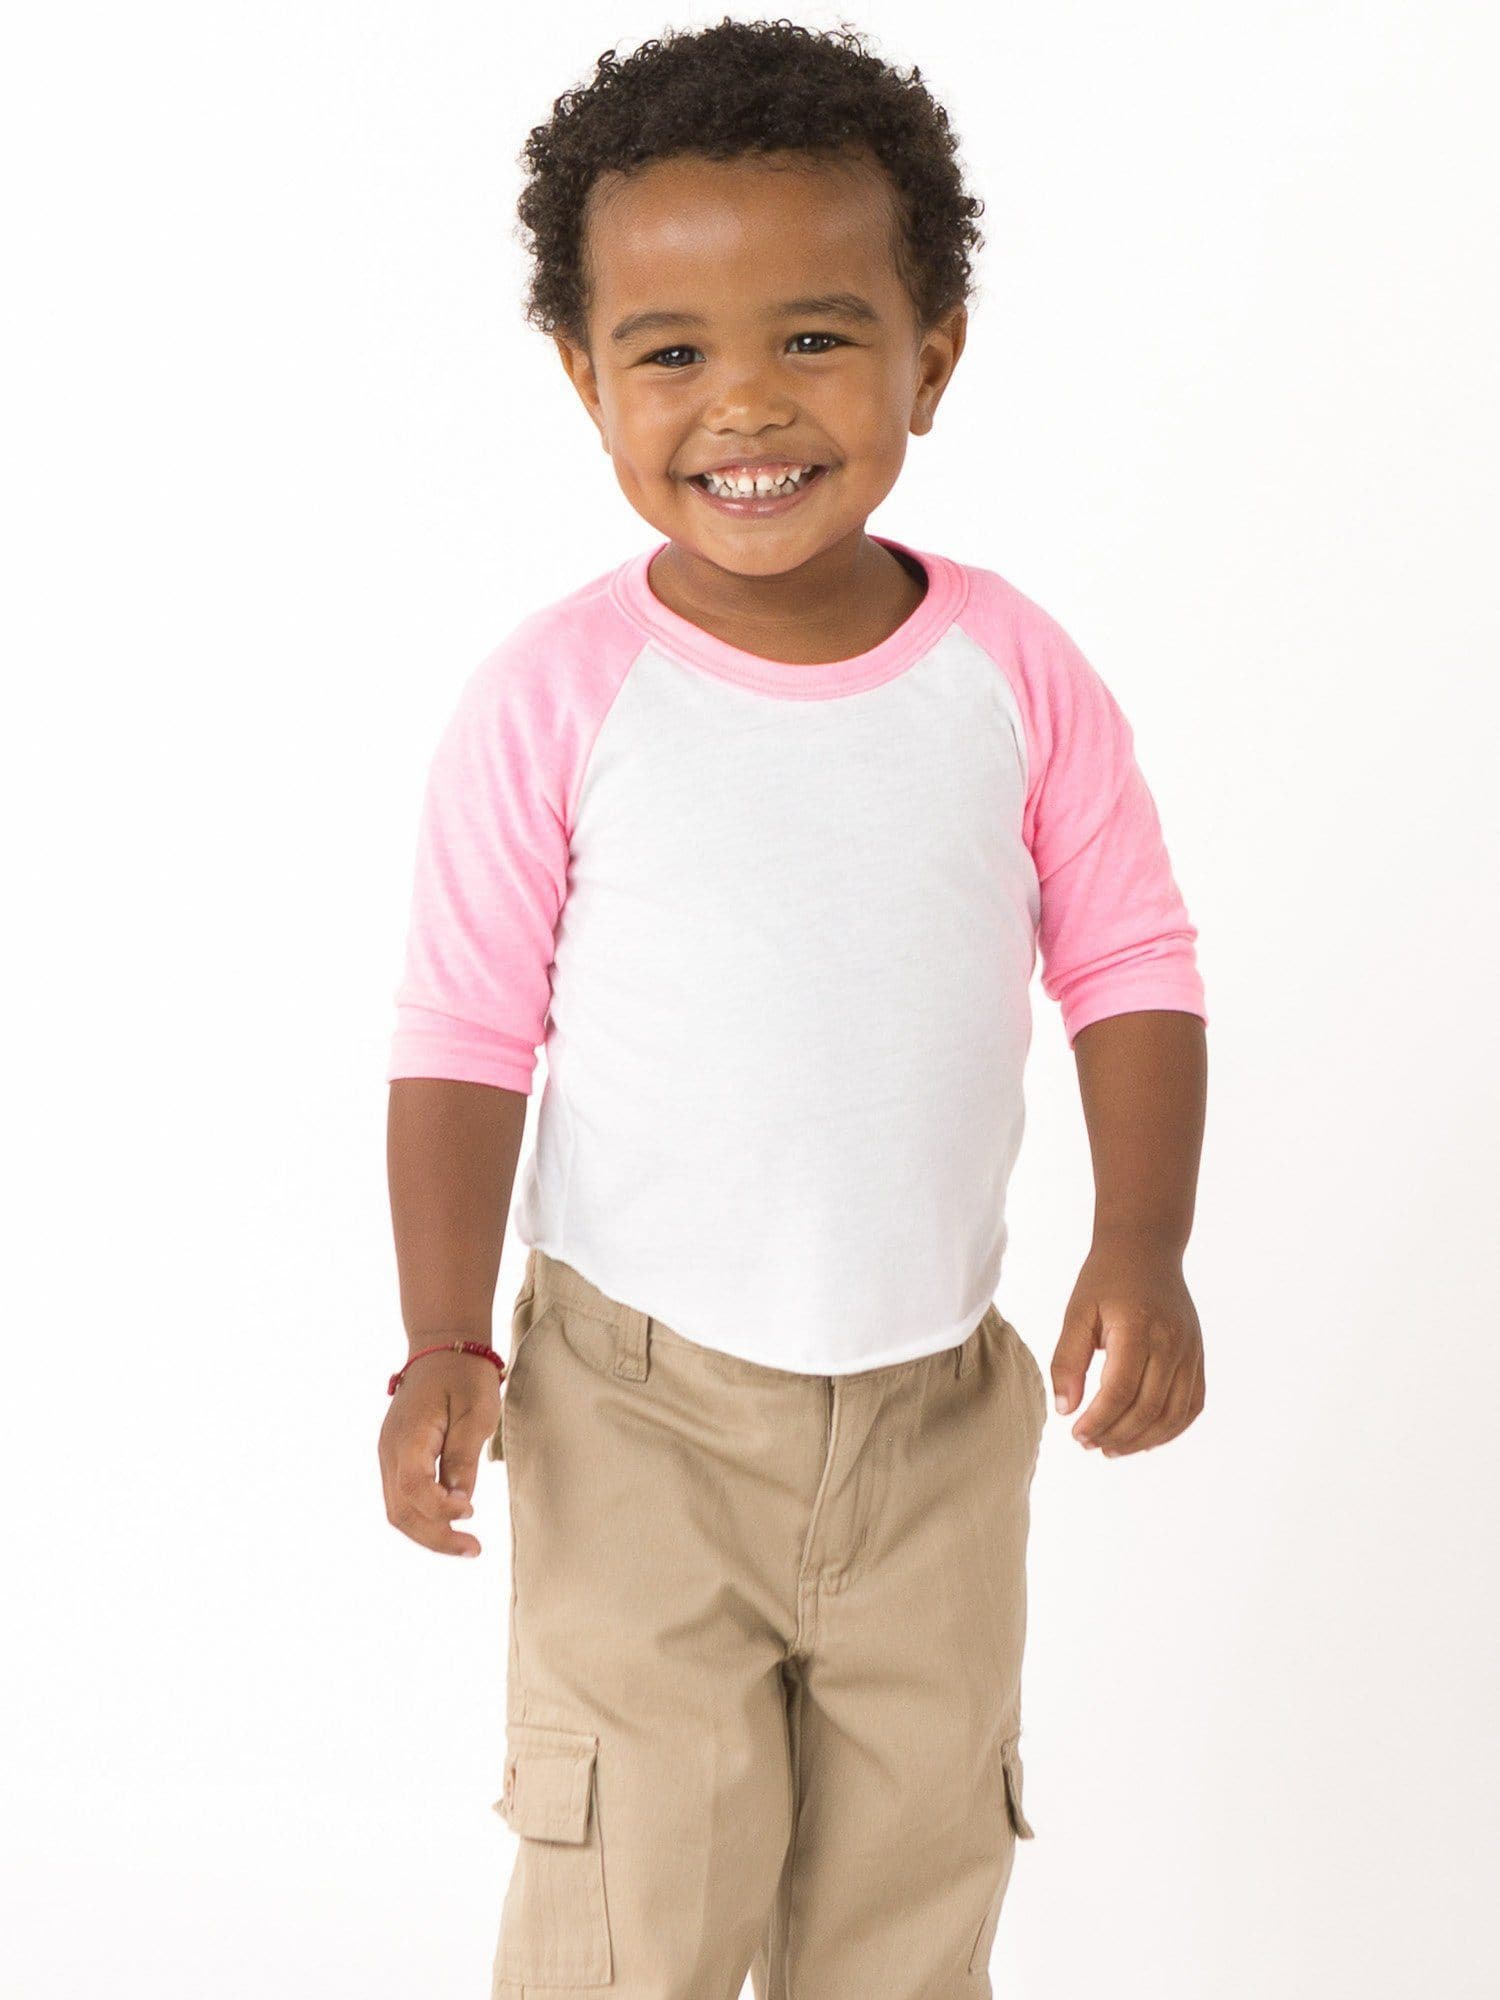 FF0053 - Infant 3/4 Sleeve Poly Cotton Raglan